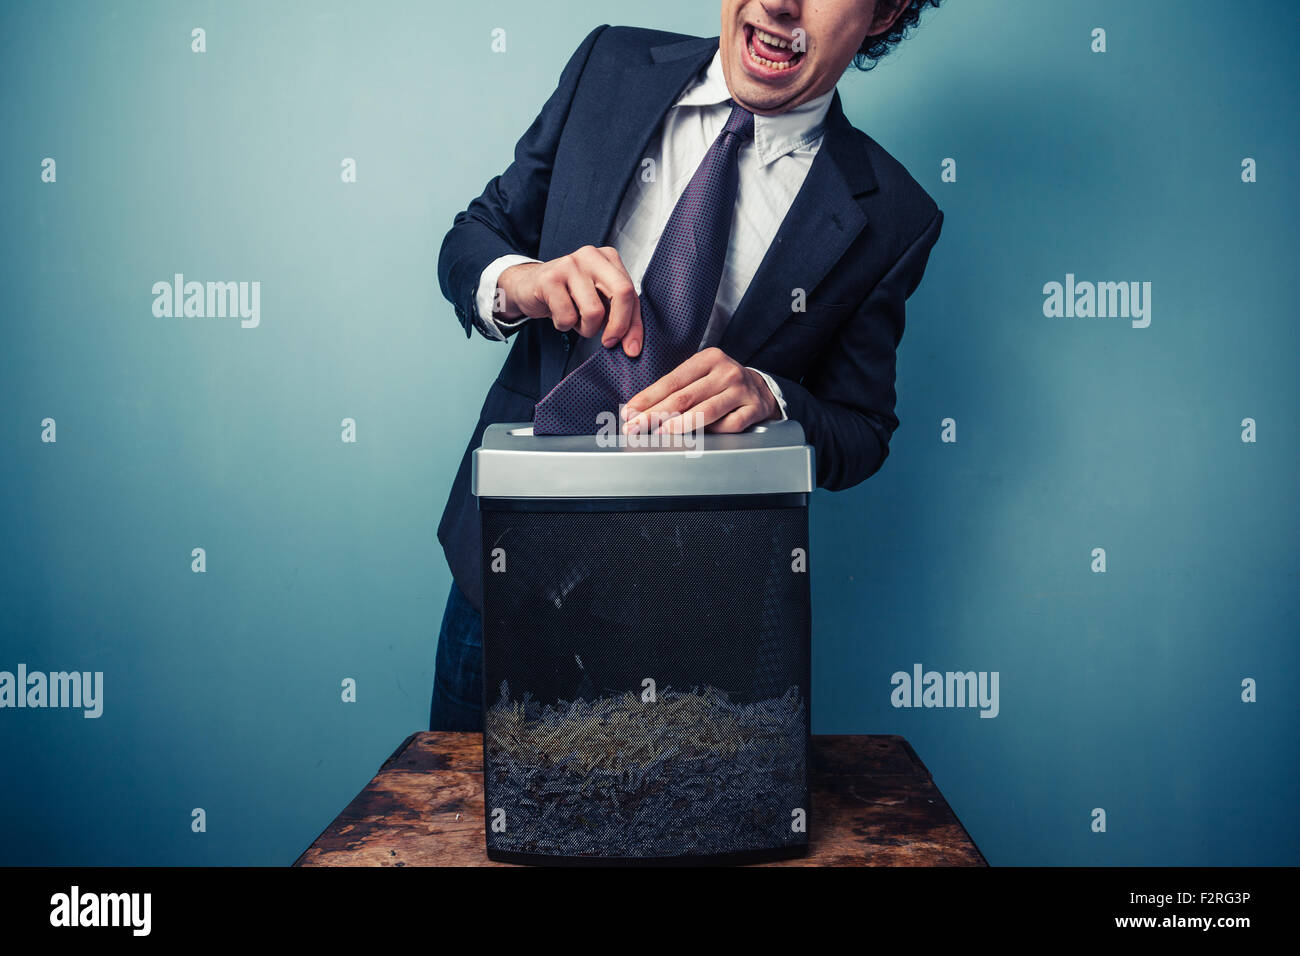 Clumsy businessman with his tie stuck in a paper shredder - Stock Image